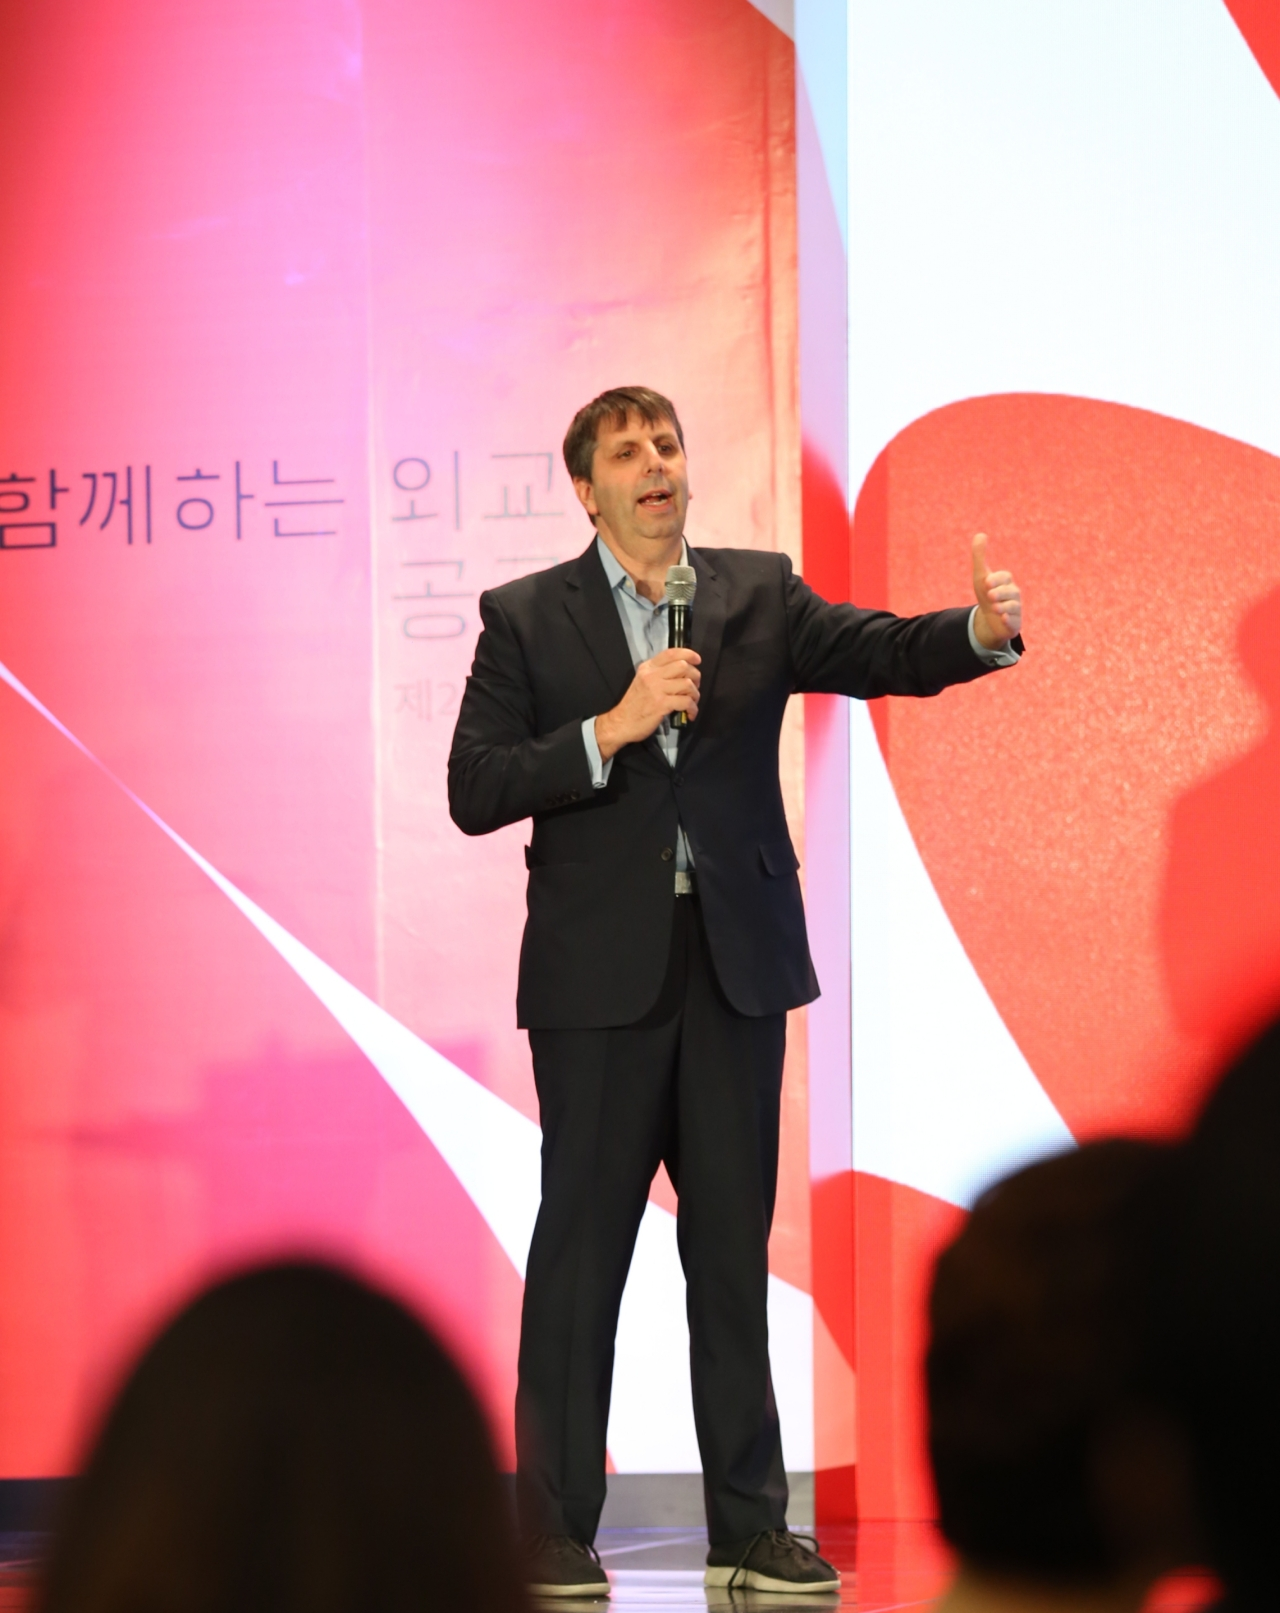 Former US Ambassador Mark Lippert gives a presentation on public diplomacy Oct. 25 at Dongdaemun Design Plaza, central Seoul. (Korea Foundation)